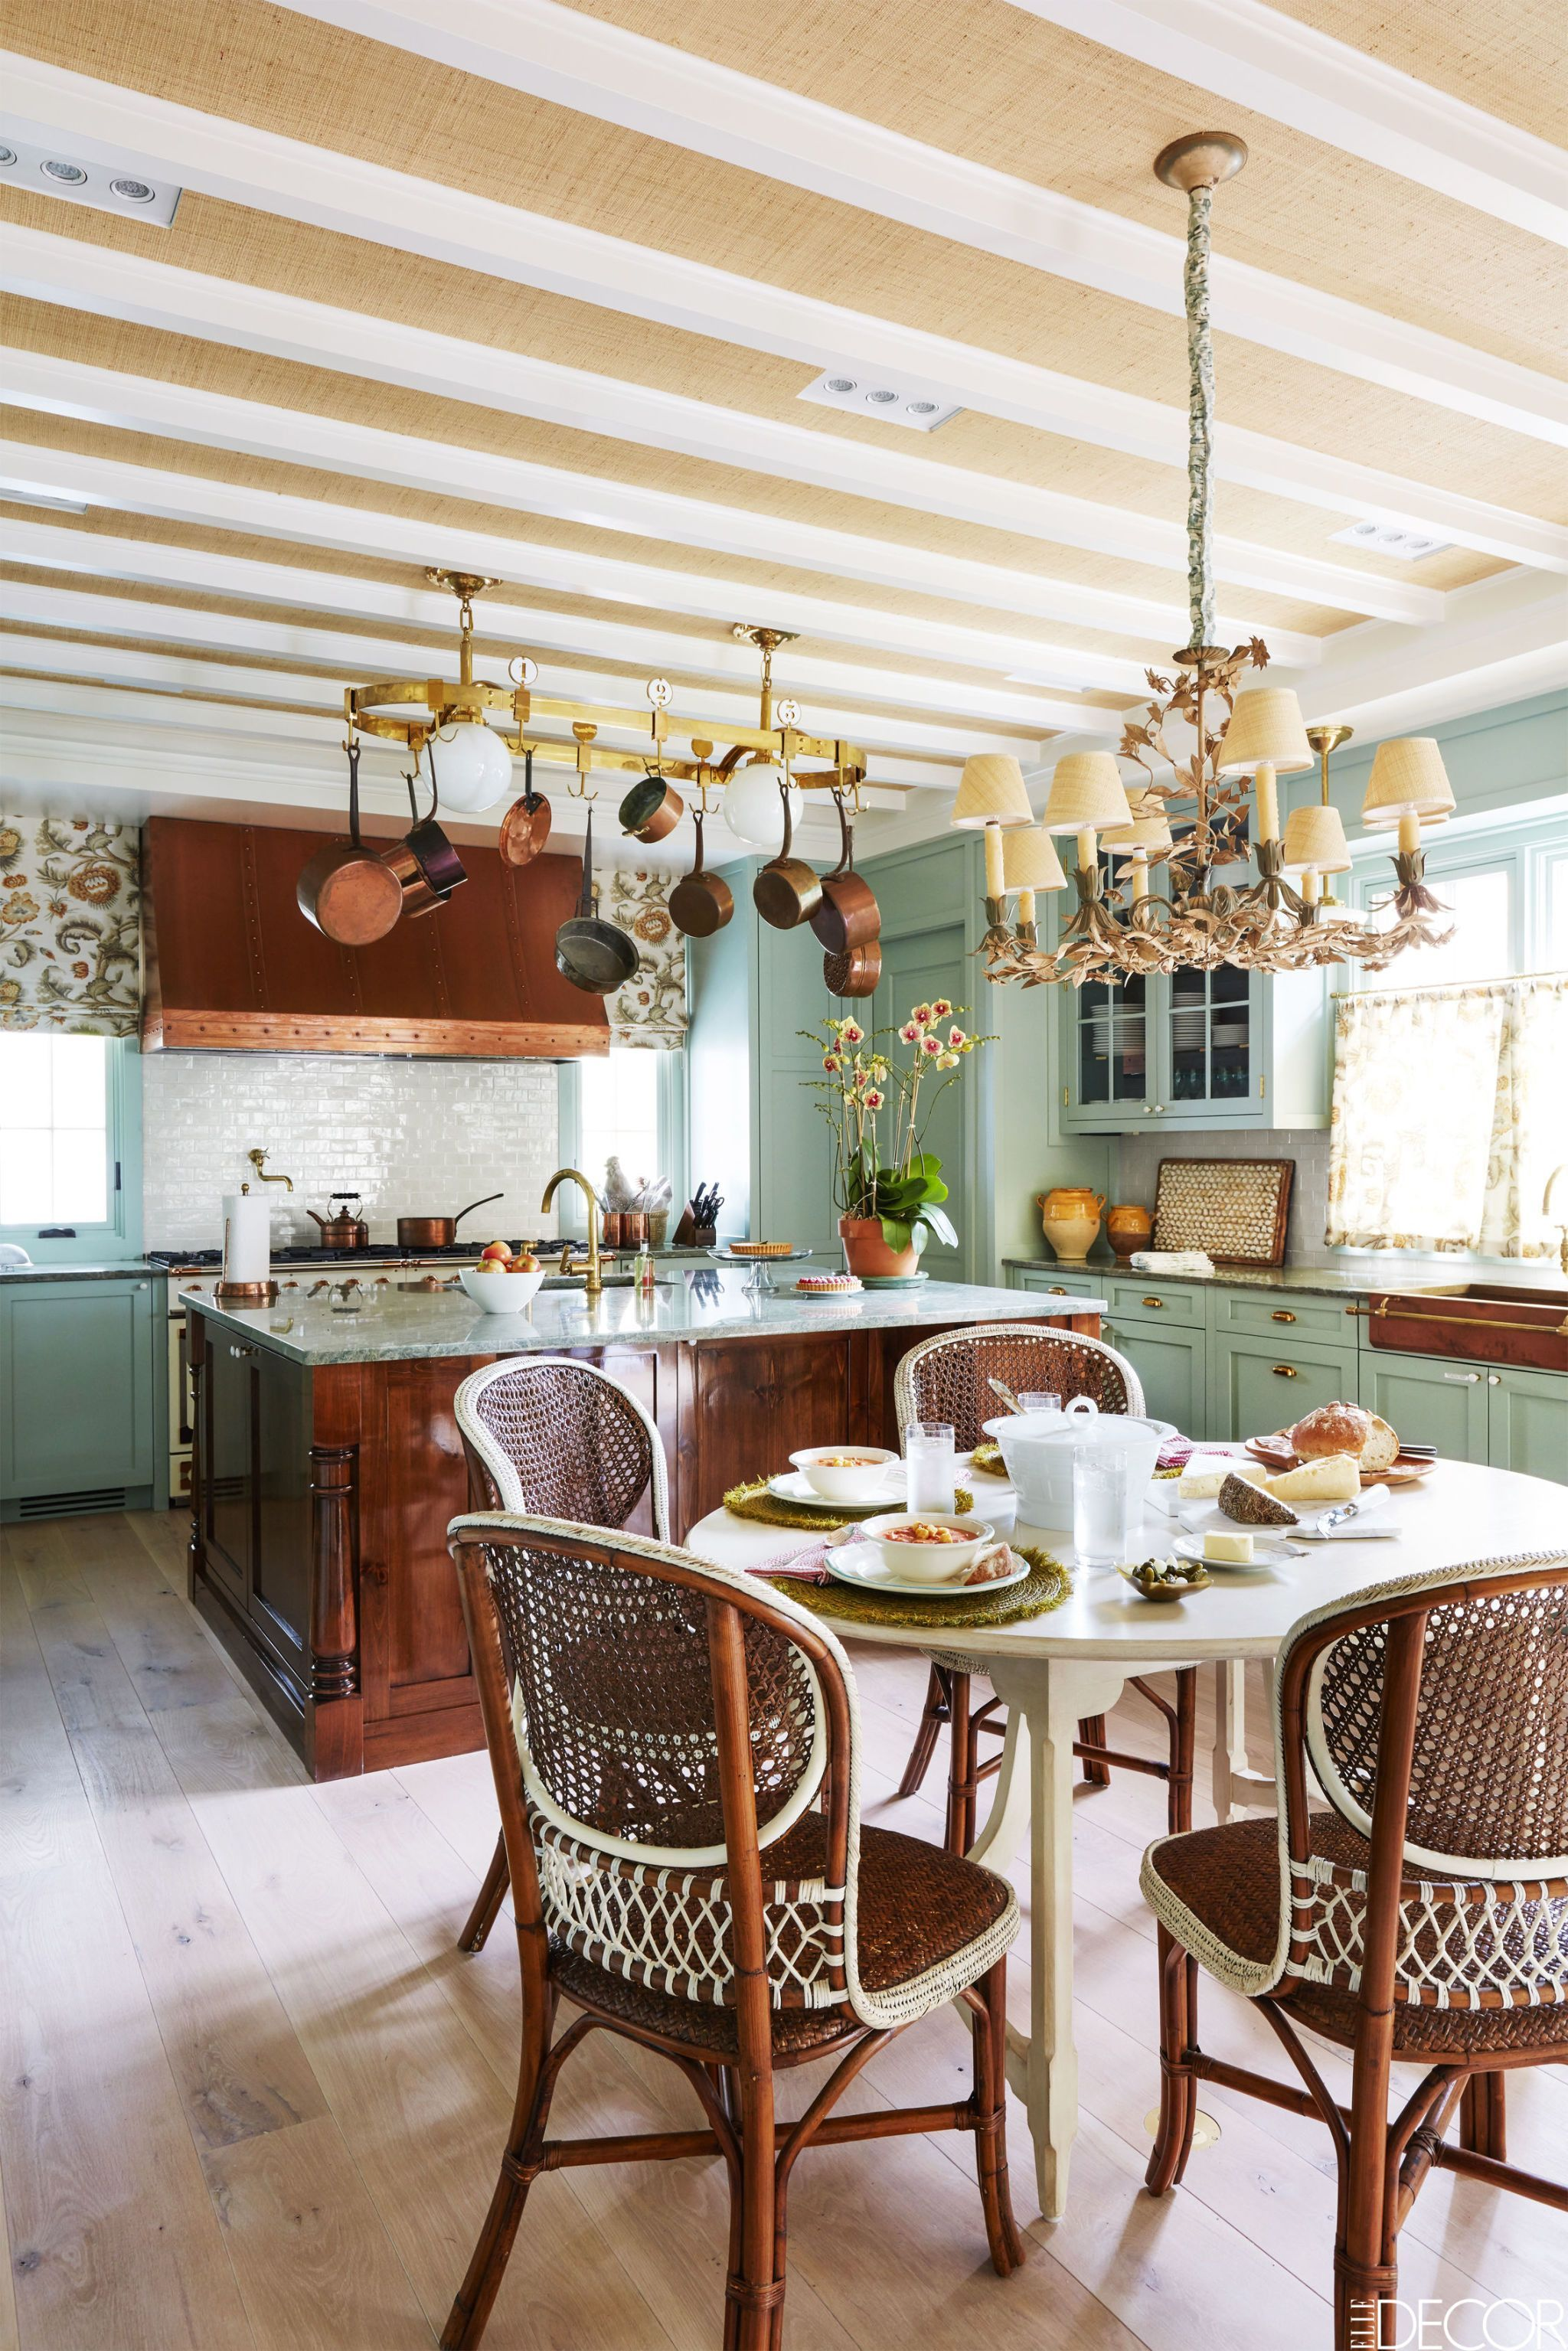 Diverting Rustic Kitchen Decor Ideas Country Kitchens Design Country Home Plans Large Kitchens Country Log Home Kitchens kitchen Country Home Kitchens